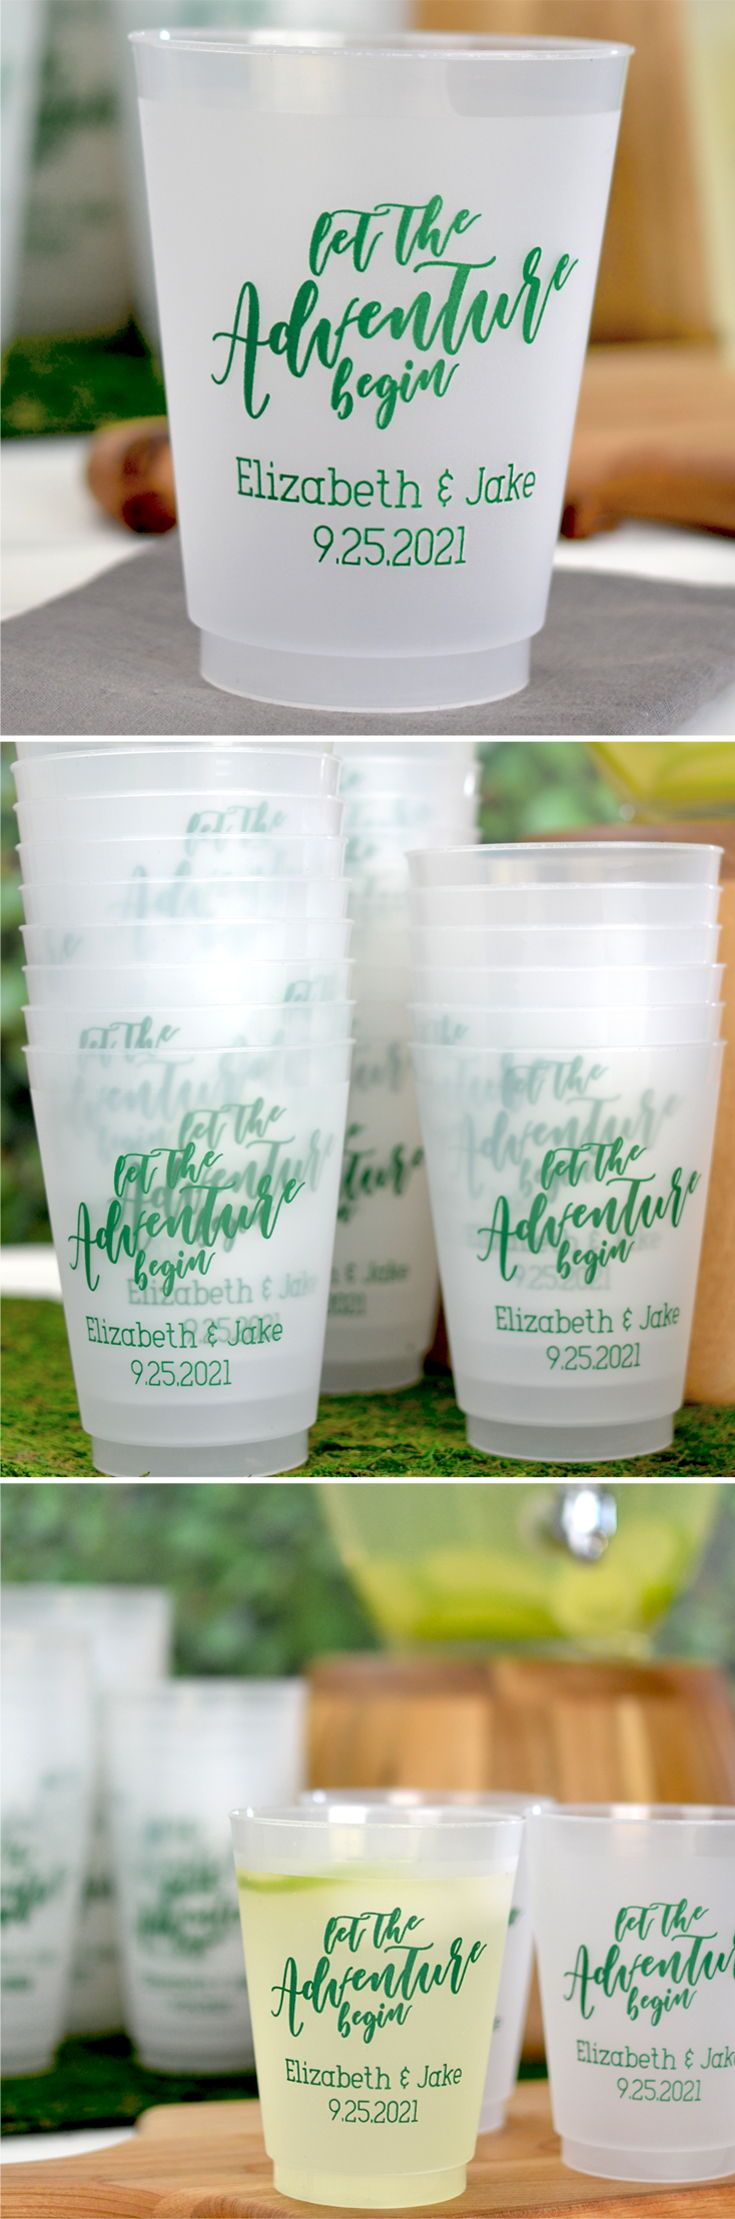 Wedding Cups - Add personality to your wedding drink station with personalized favor cups. 16 ounce size favor cups are most commonly used for serving beer and soft drinks. Stack cups at your self-serve drink station so guests can help themselves. Stock your bar with souvenir cups for serving beer and large mixed drinks. Encourage guests to take their cups home as wedding souvenirs. These cups can be ordered at…